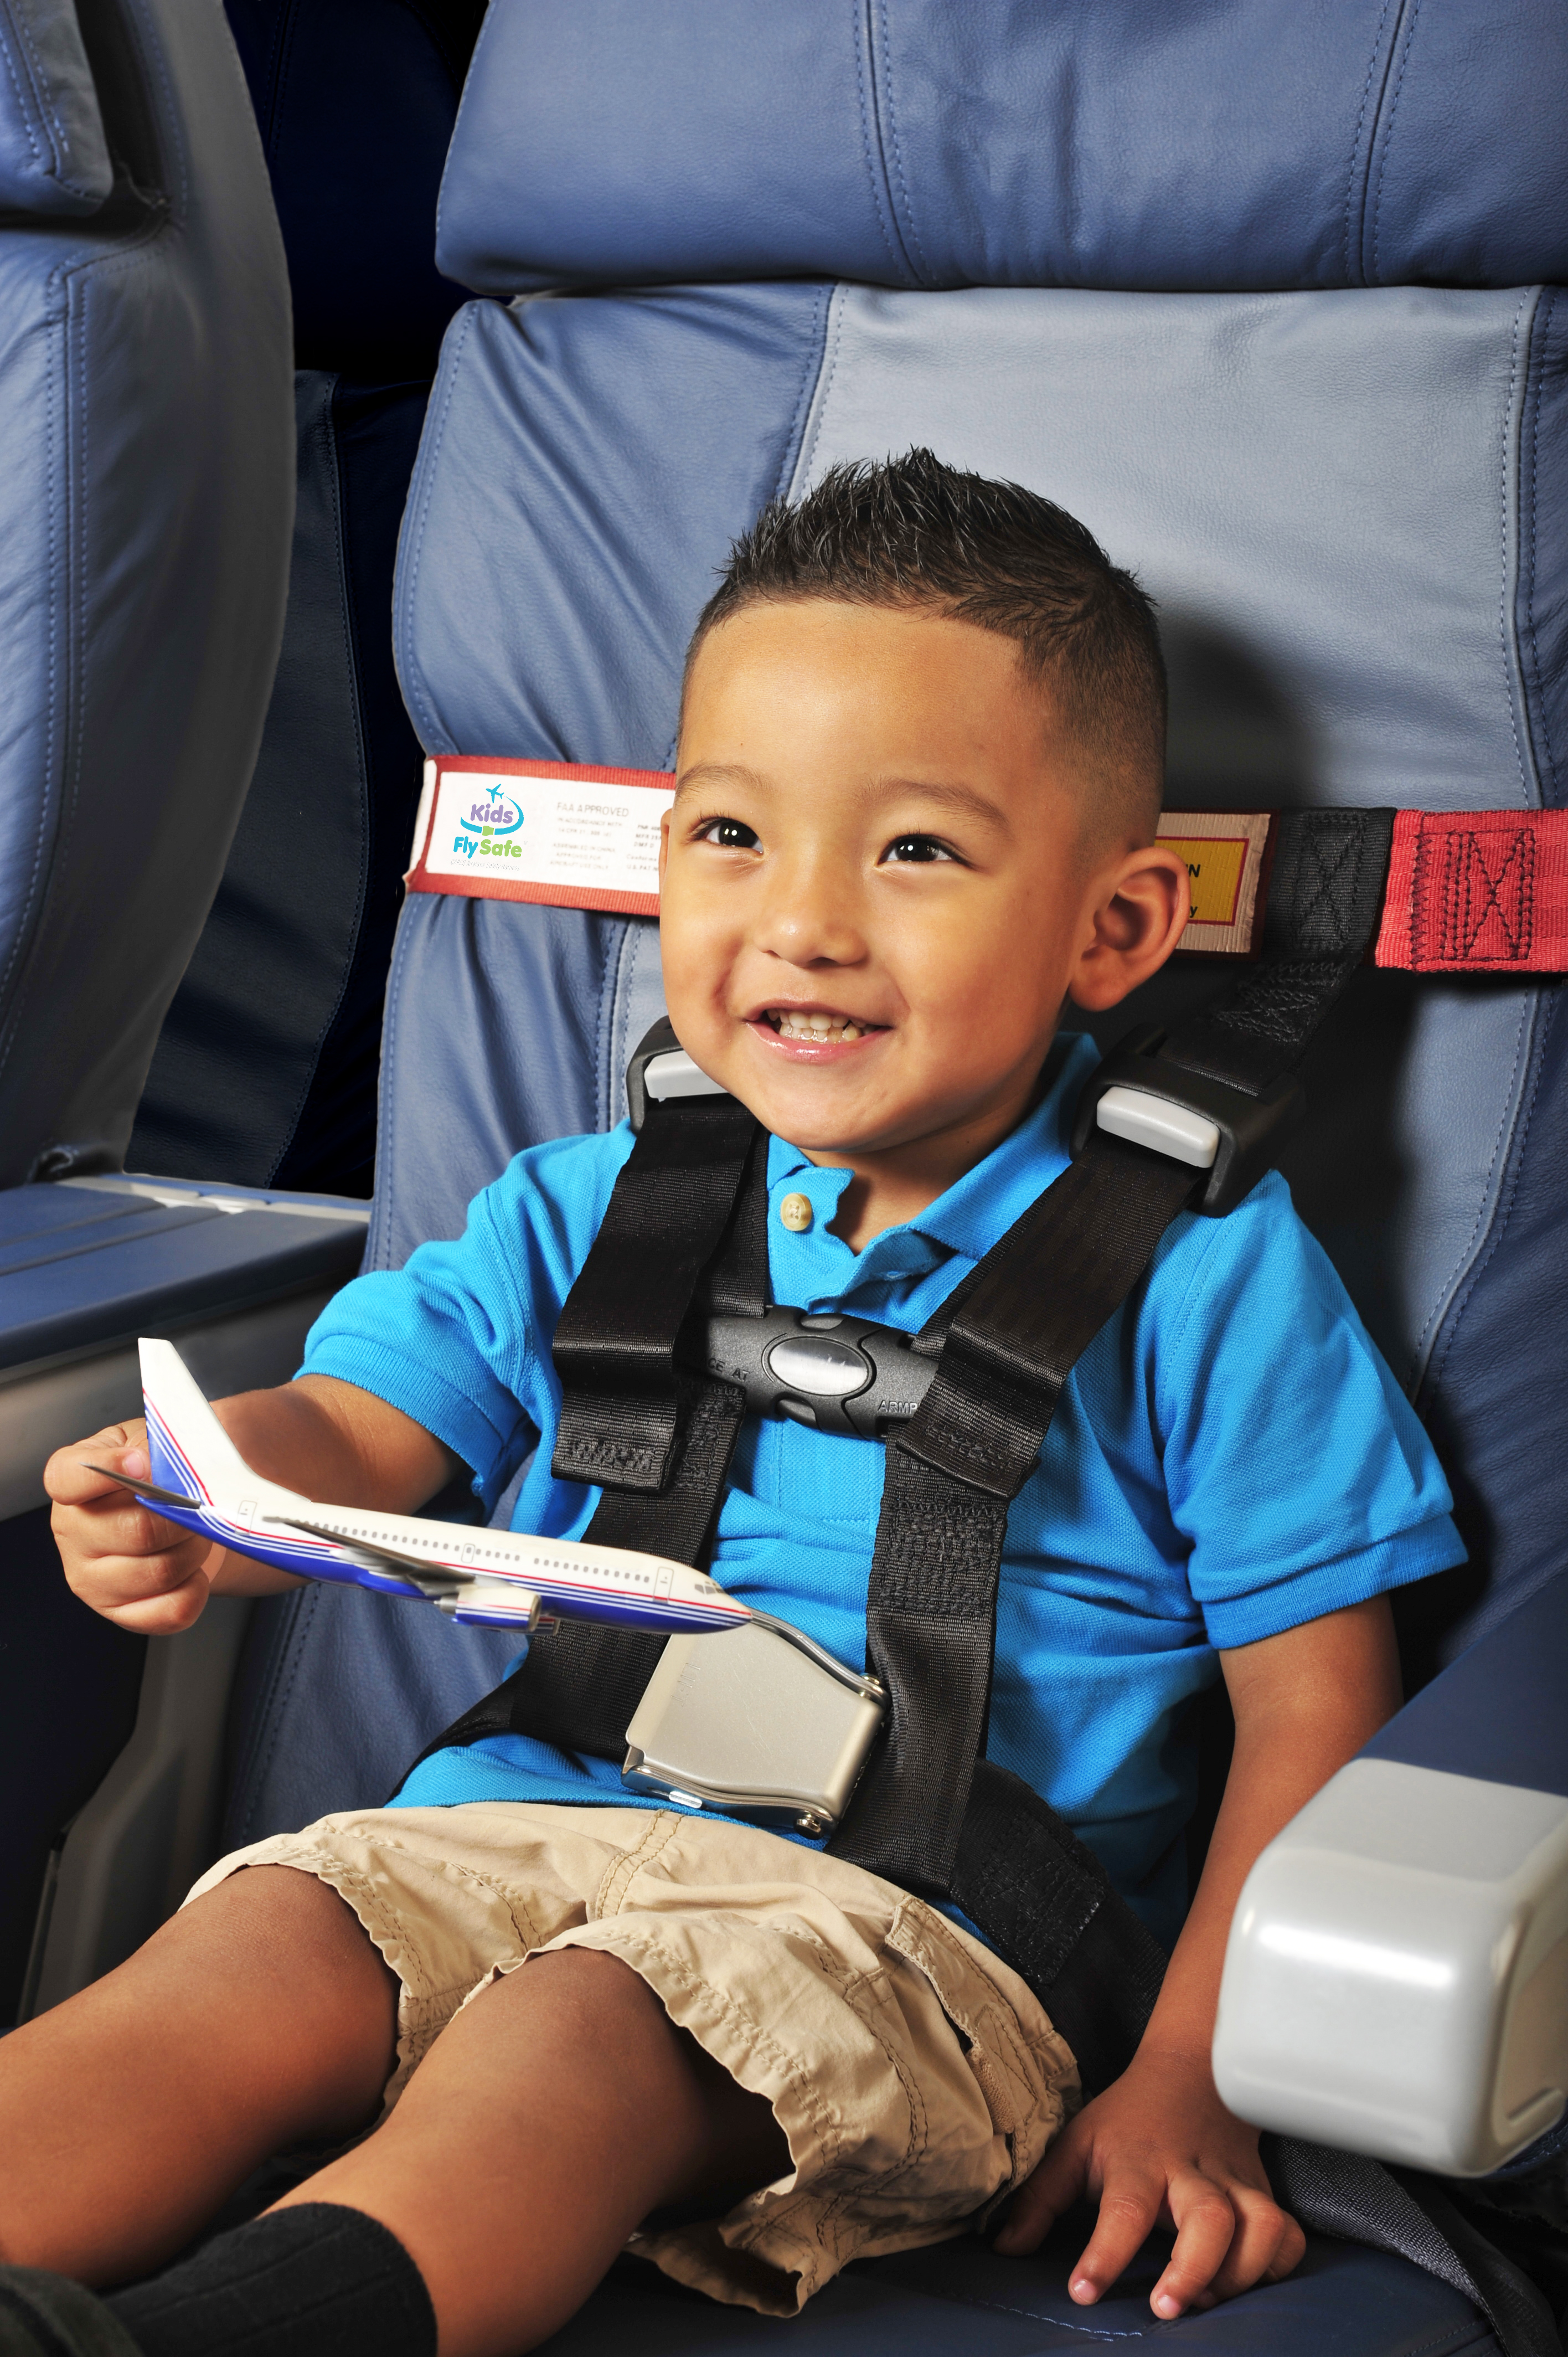 Seat Harness For Children While Flying Cares Child